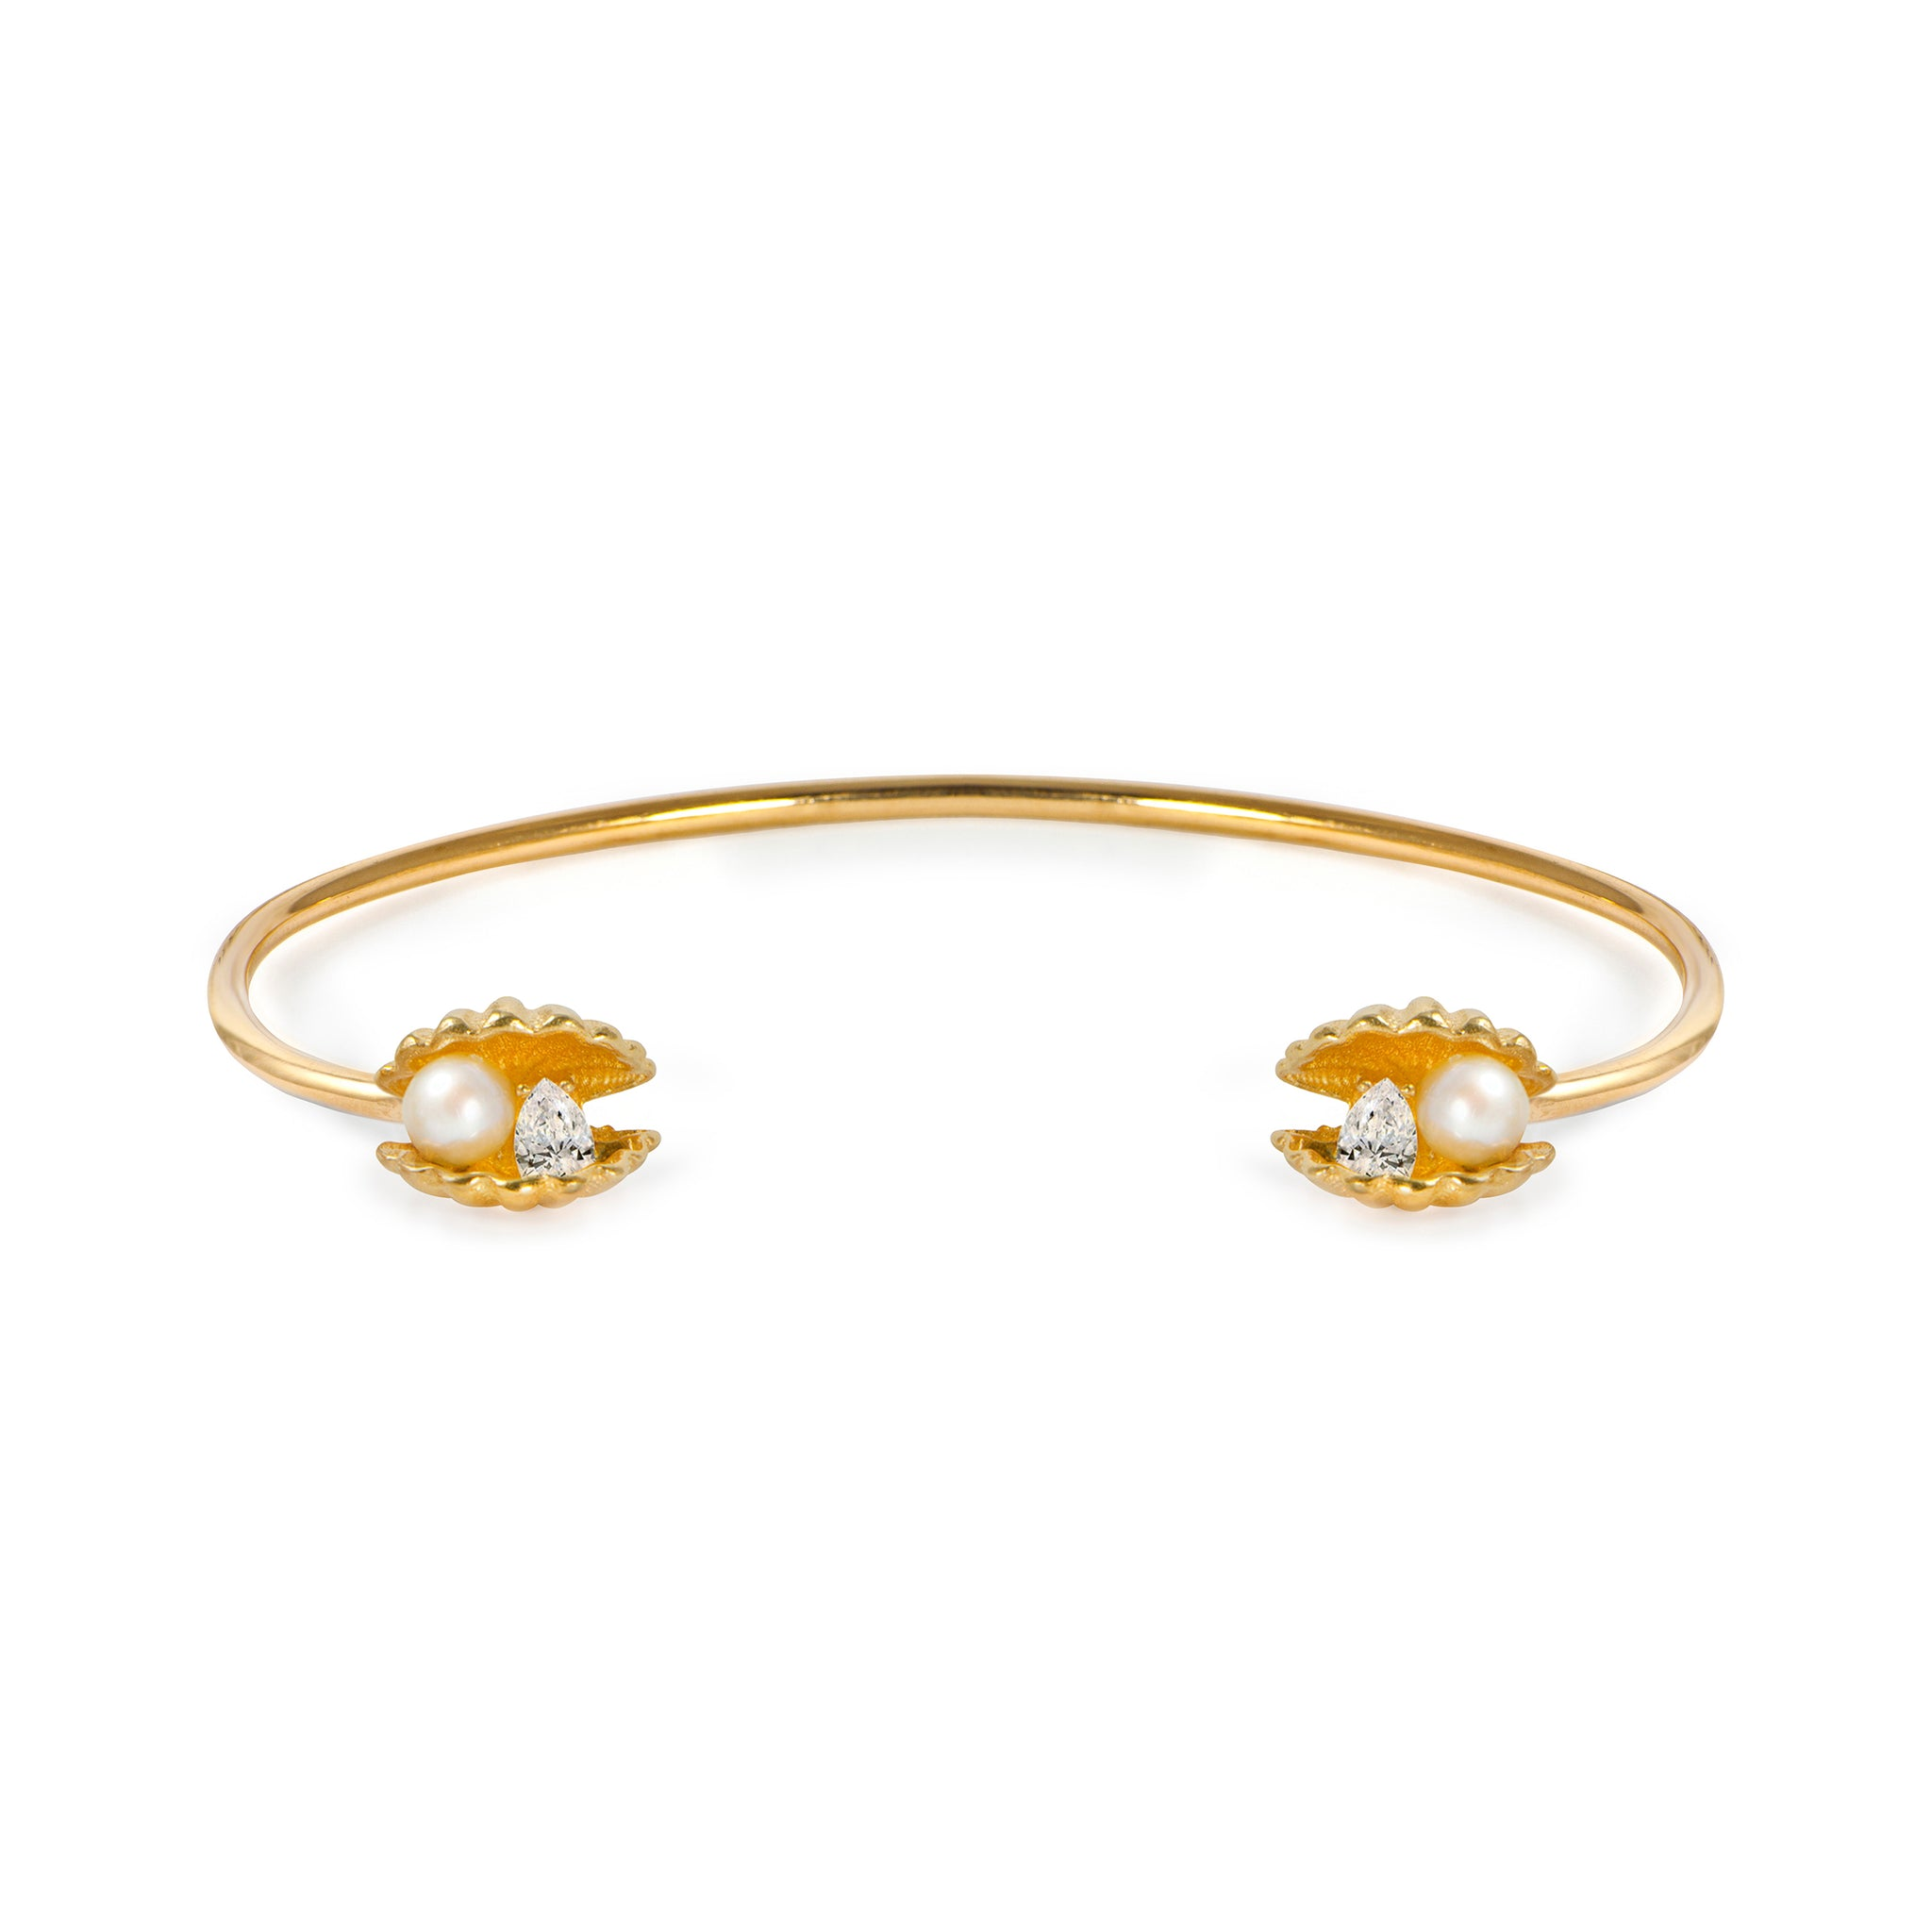 APPLES & FIGS - VENUS CLAM TWINS CUFF